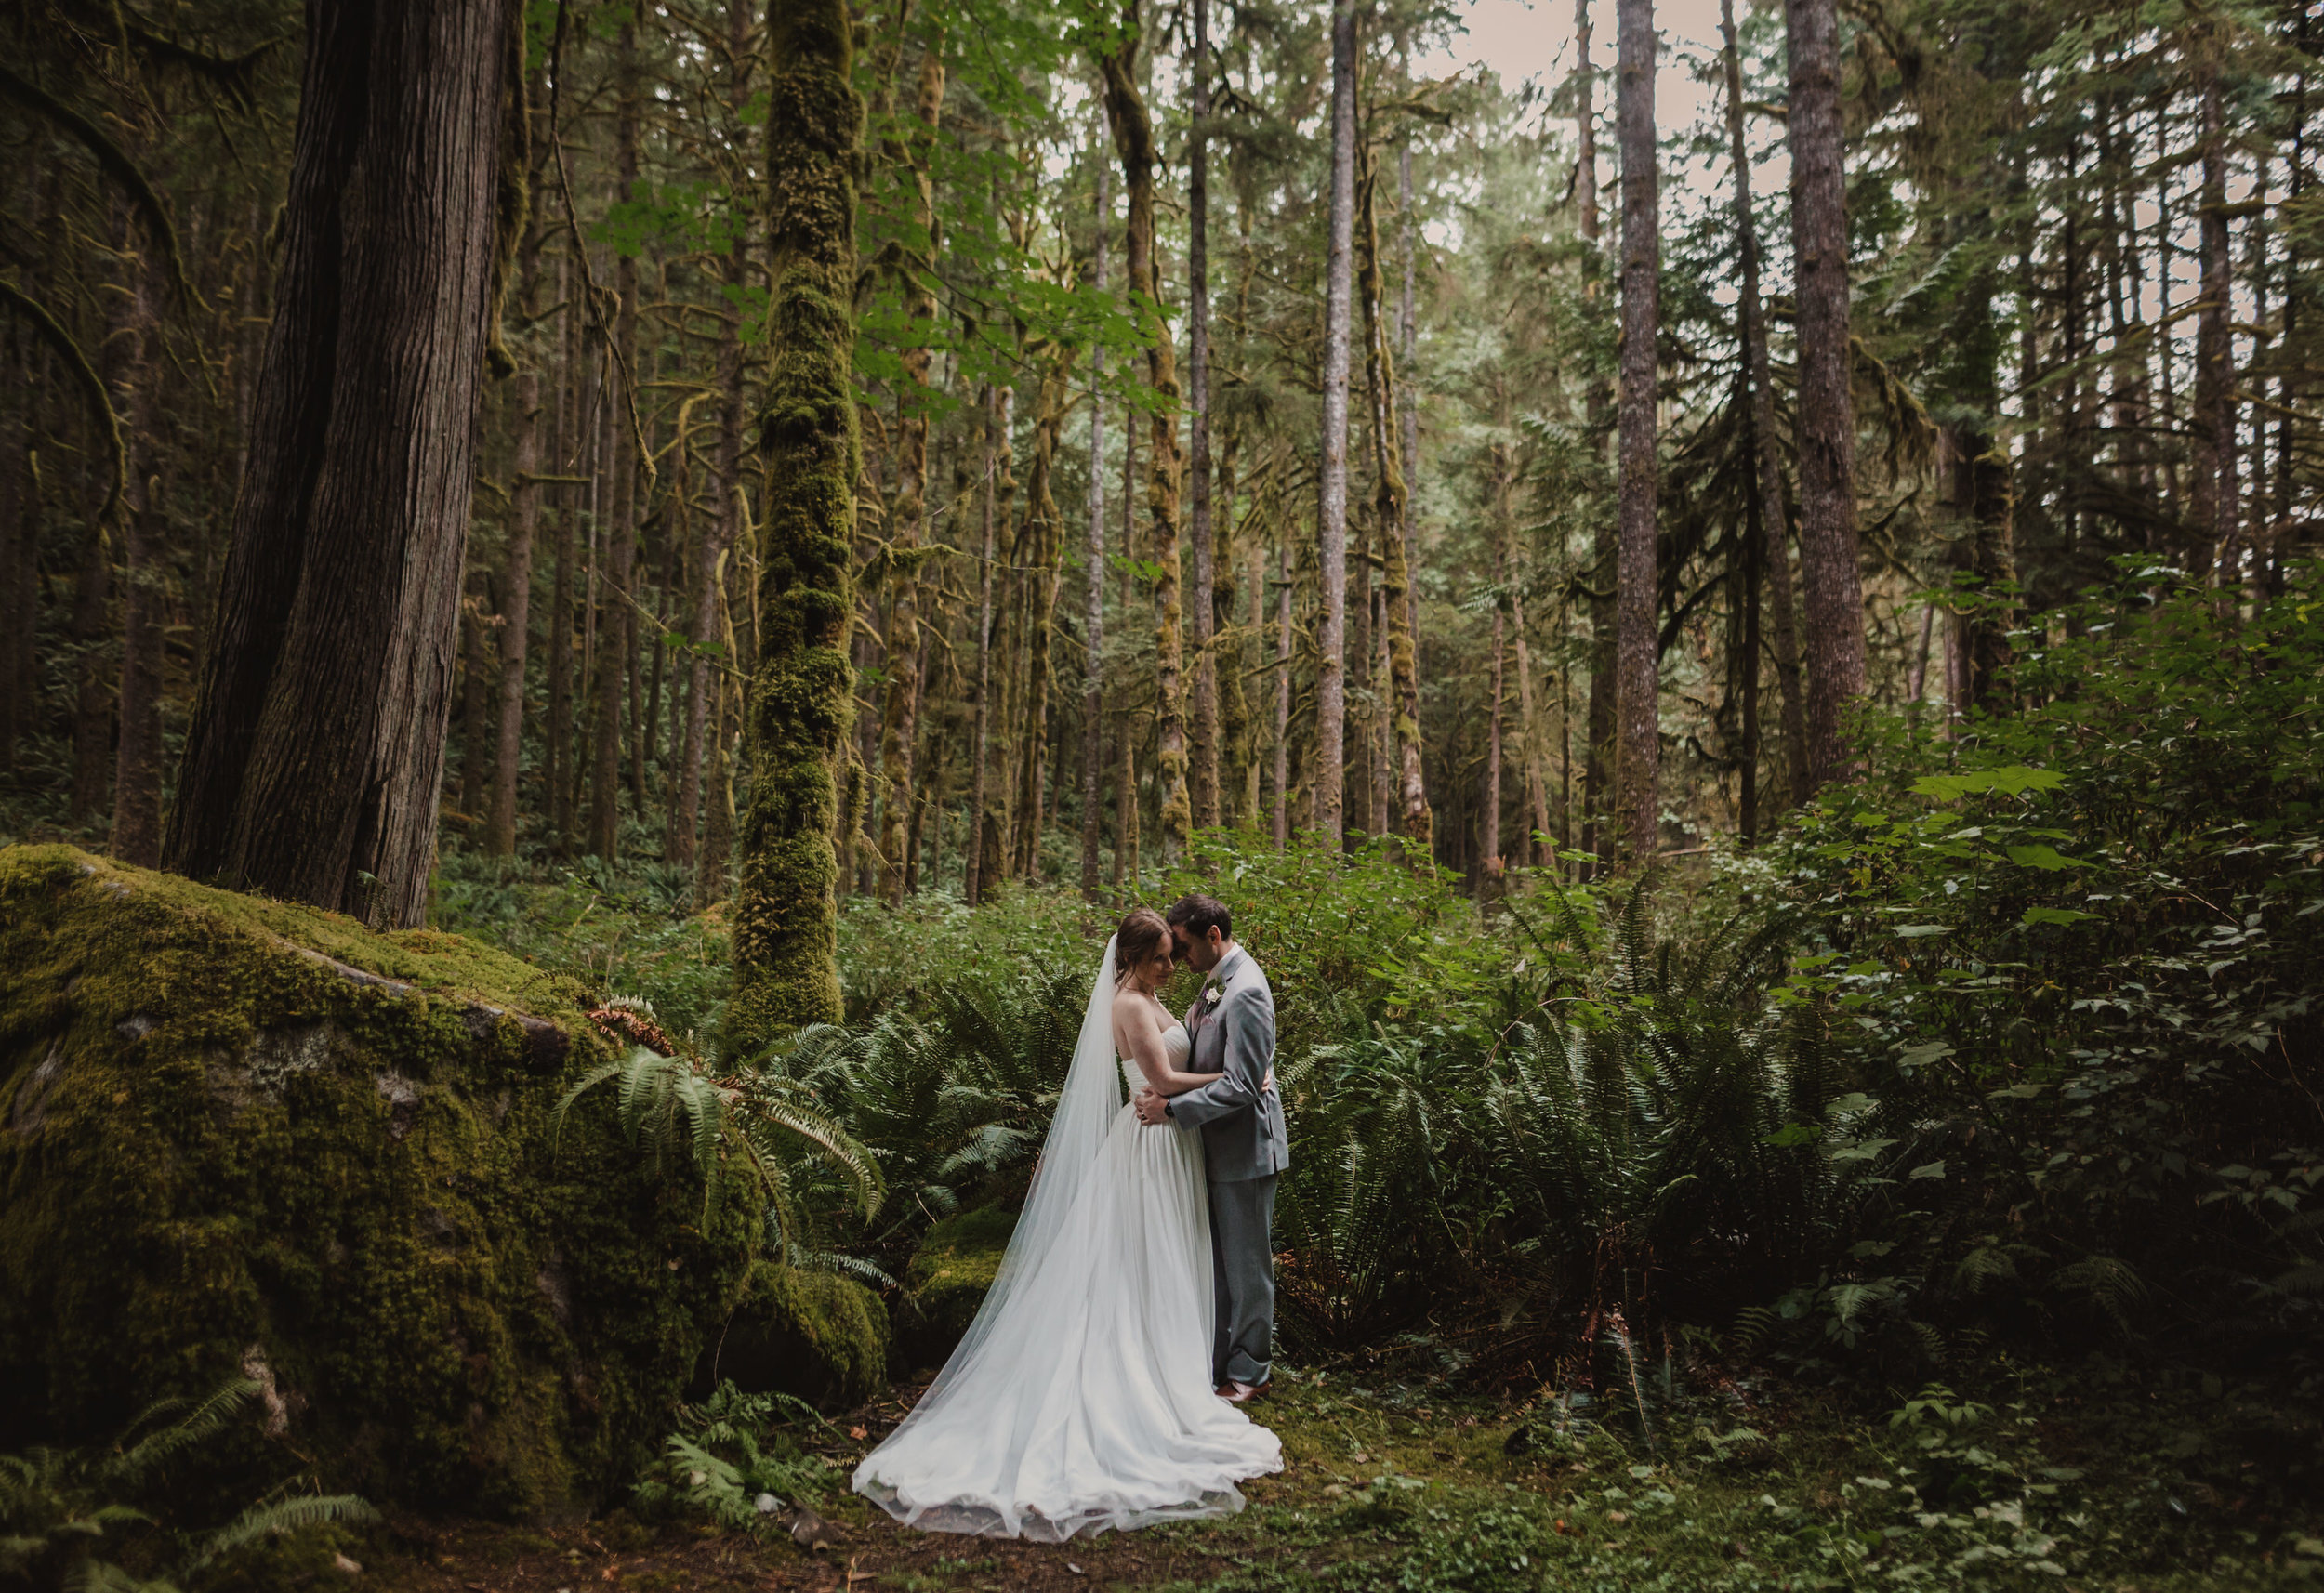 West Coast Wilderness Lodge Wedding Photos - Vancouver Wedding Photographer & Videographer - Sunshine Coast Wedding Photos - Sunshine Coast Wedding Photographer - Jennifer Picard Photography - IMG_3063.jpg